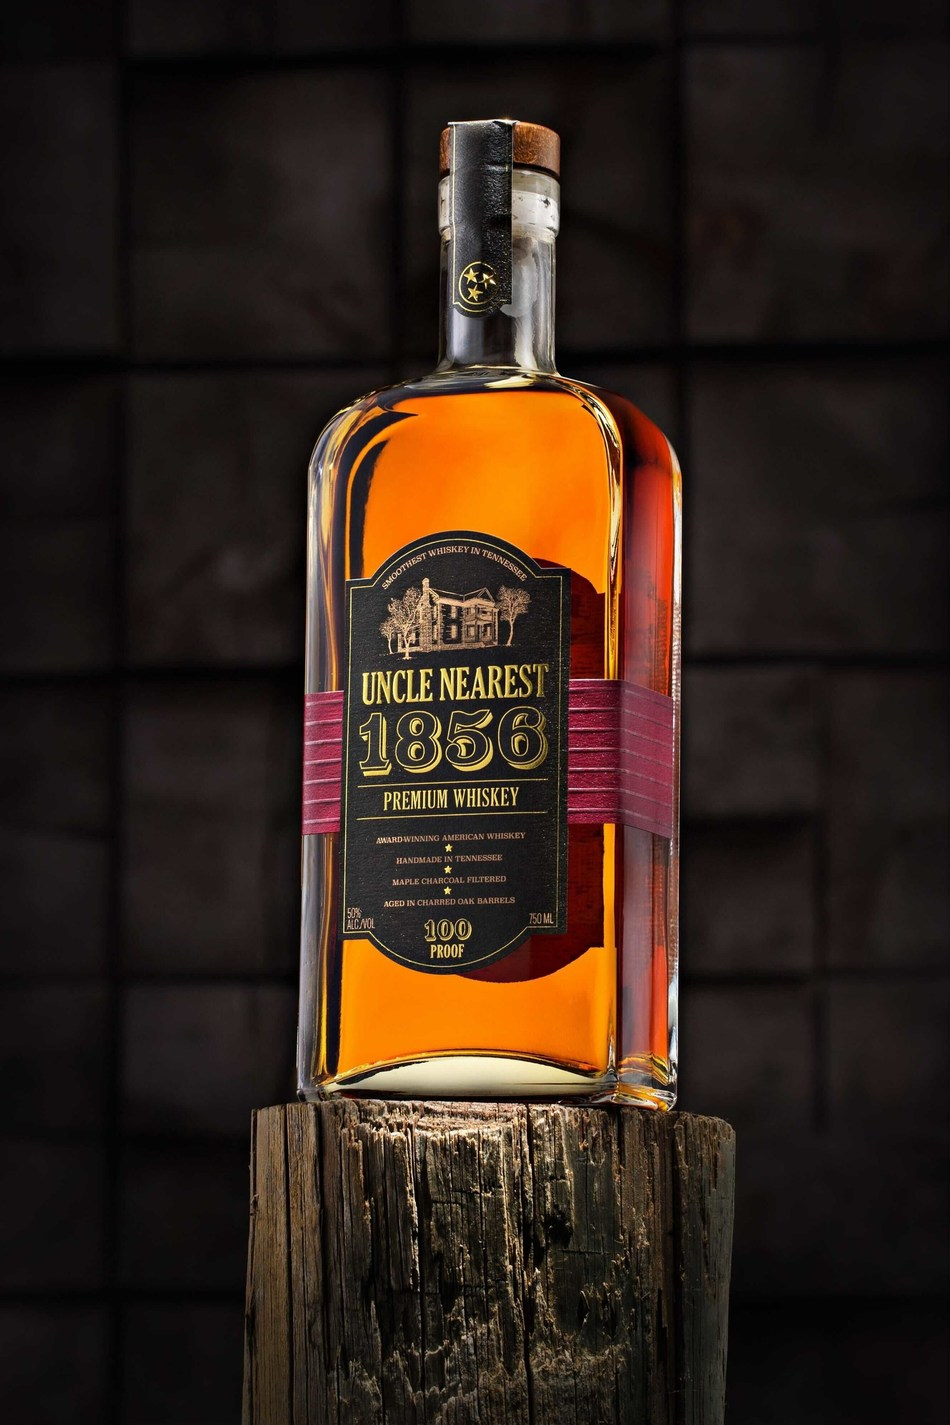 Uncle Nearest Premium Whiskey debuted in July 2017 with its 1856 Premium Aged Whiskey.